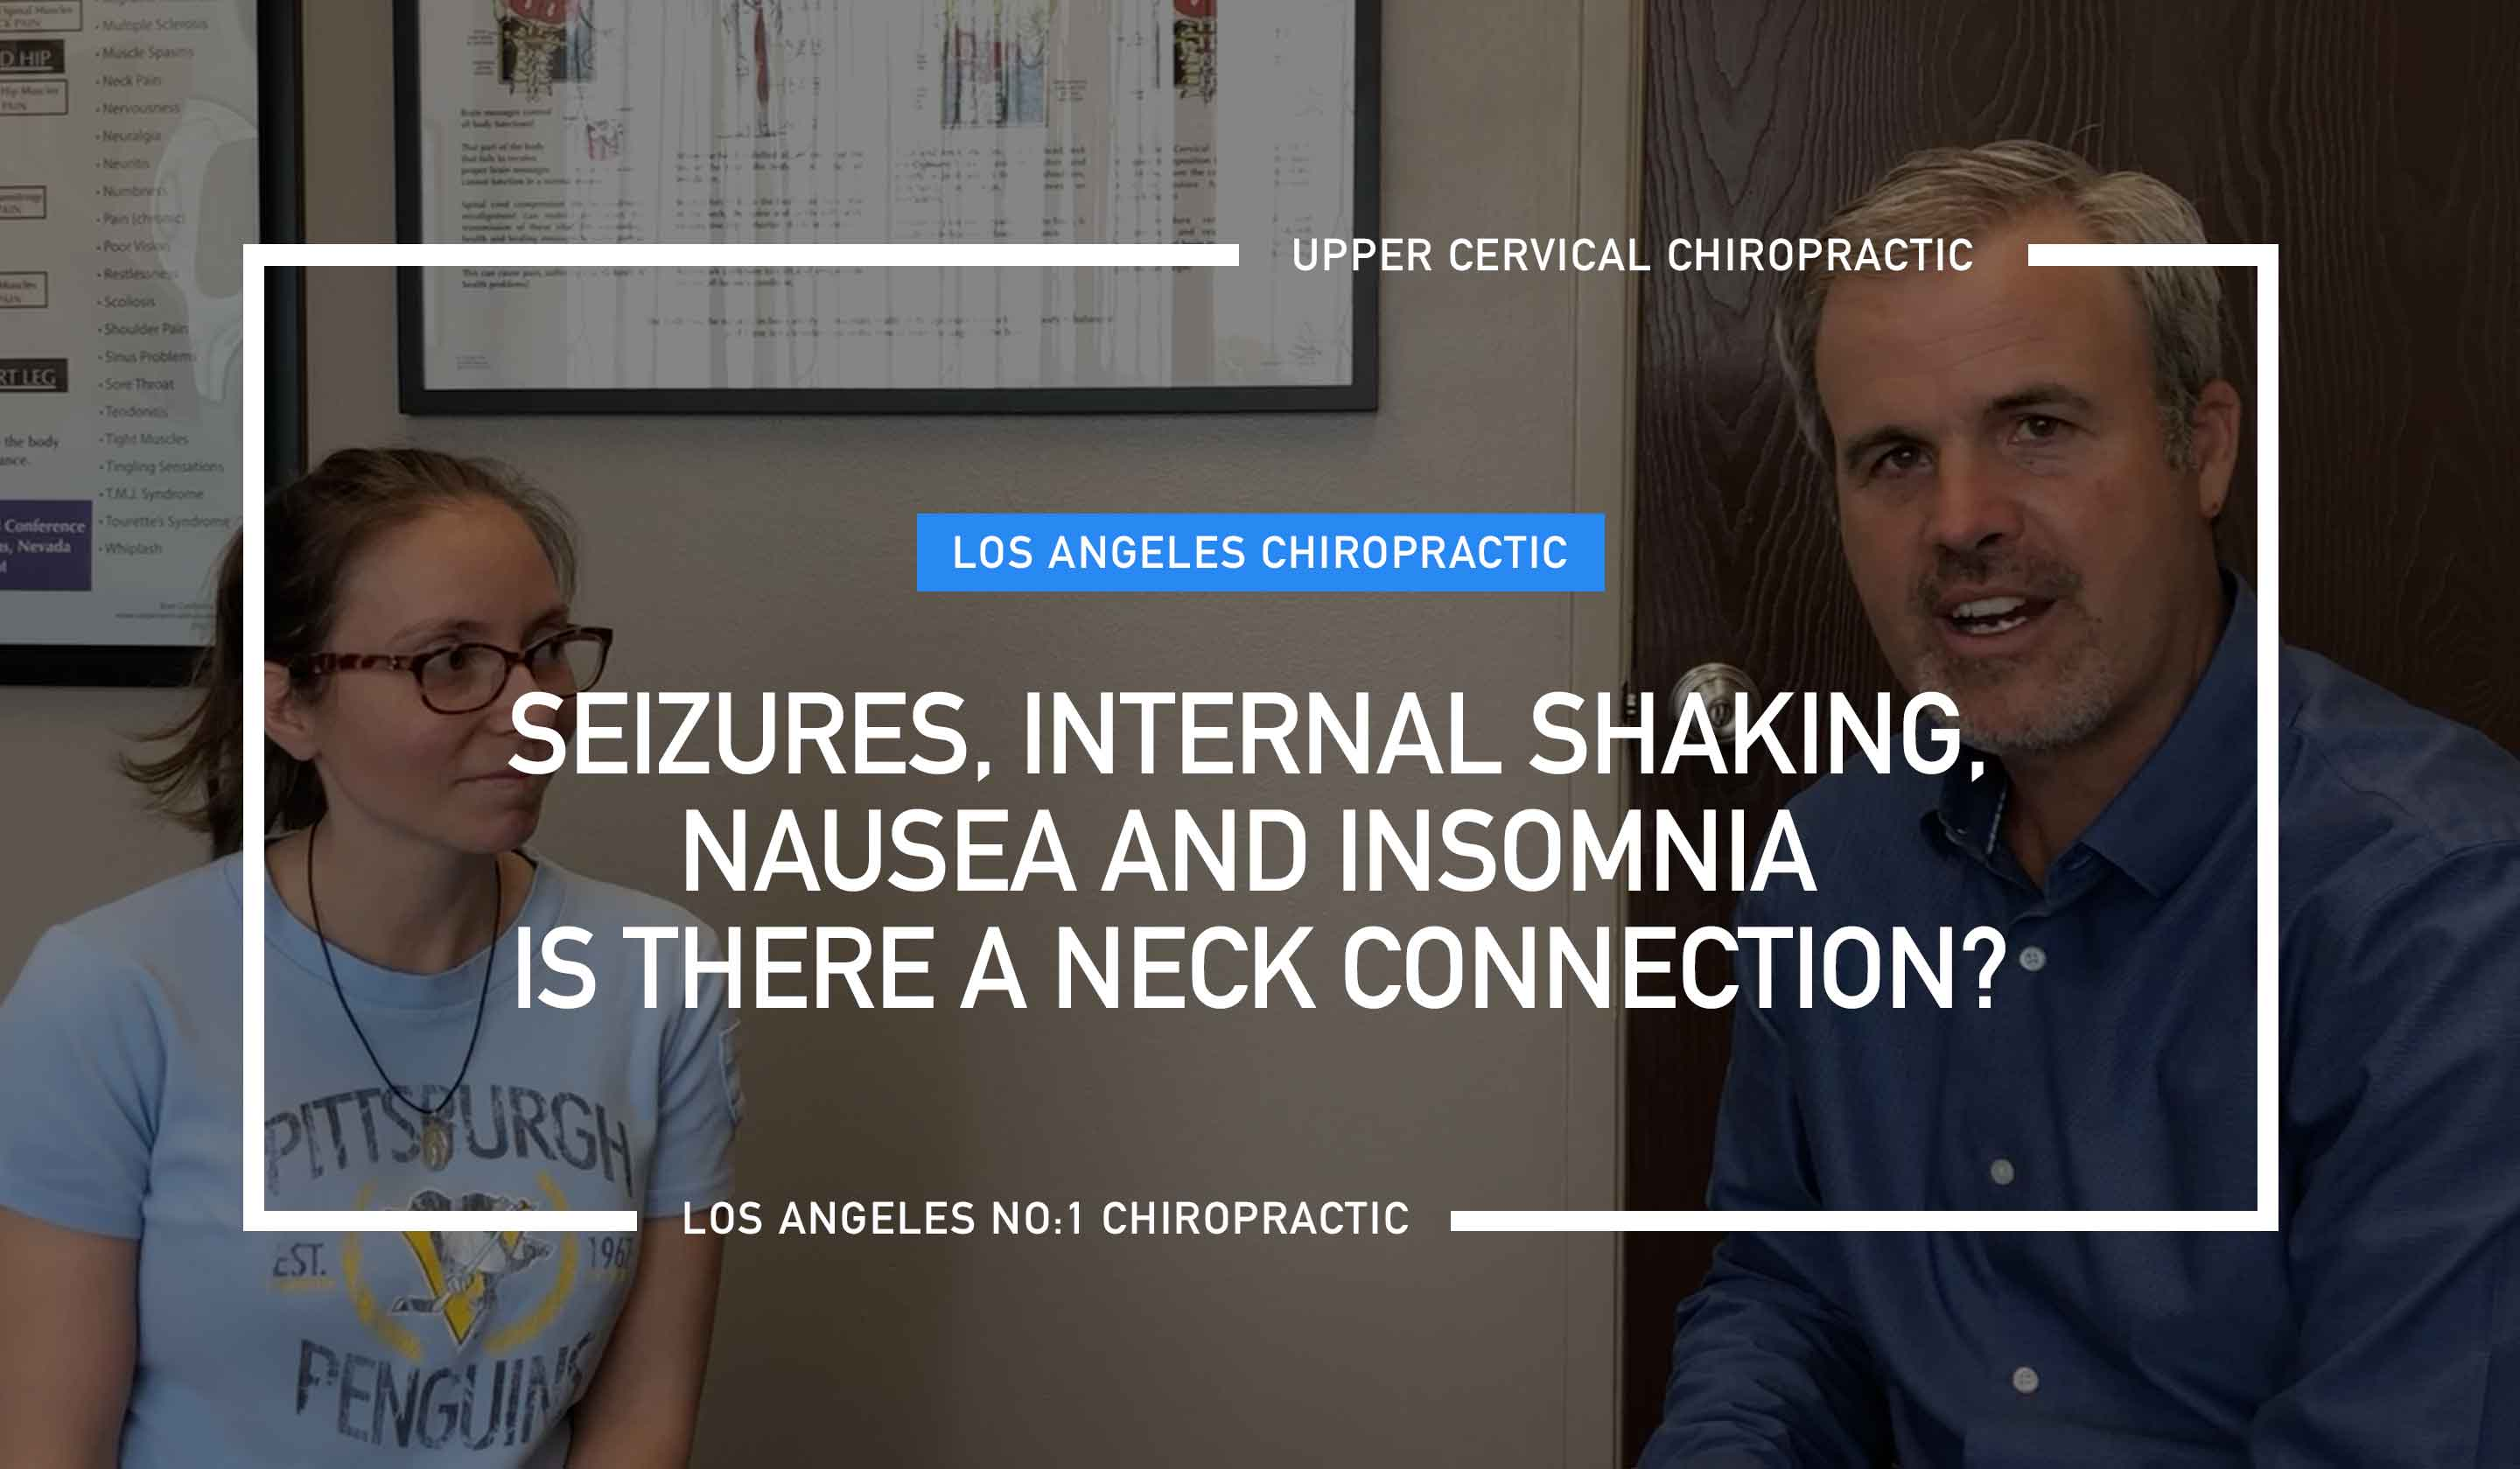 Recently we interviewed one of our new patients who has suffered from seizures, internal shaking, insomnia, low energy, and neck pain for years.  Unfortunately for 11 years, she went from doctor to doctor looking for help.